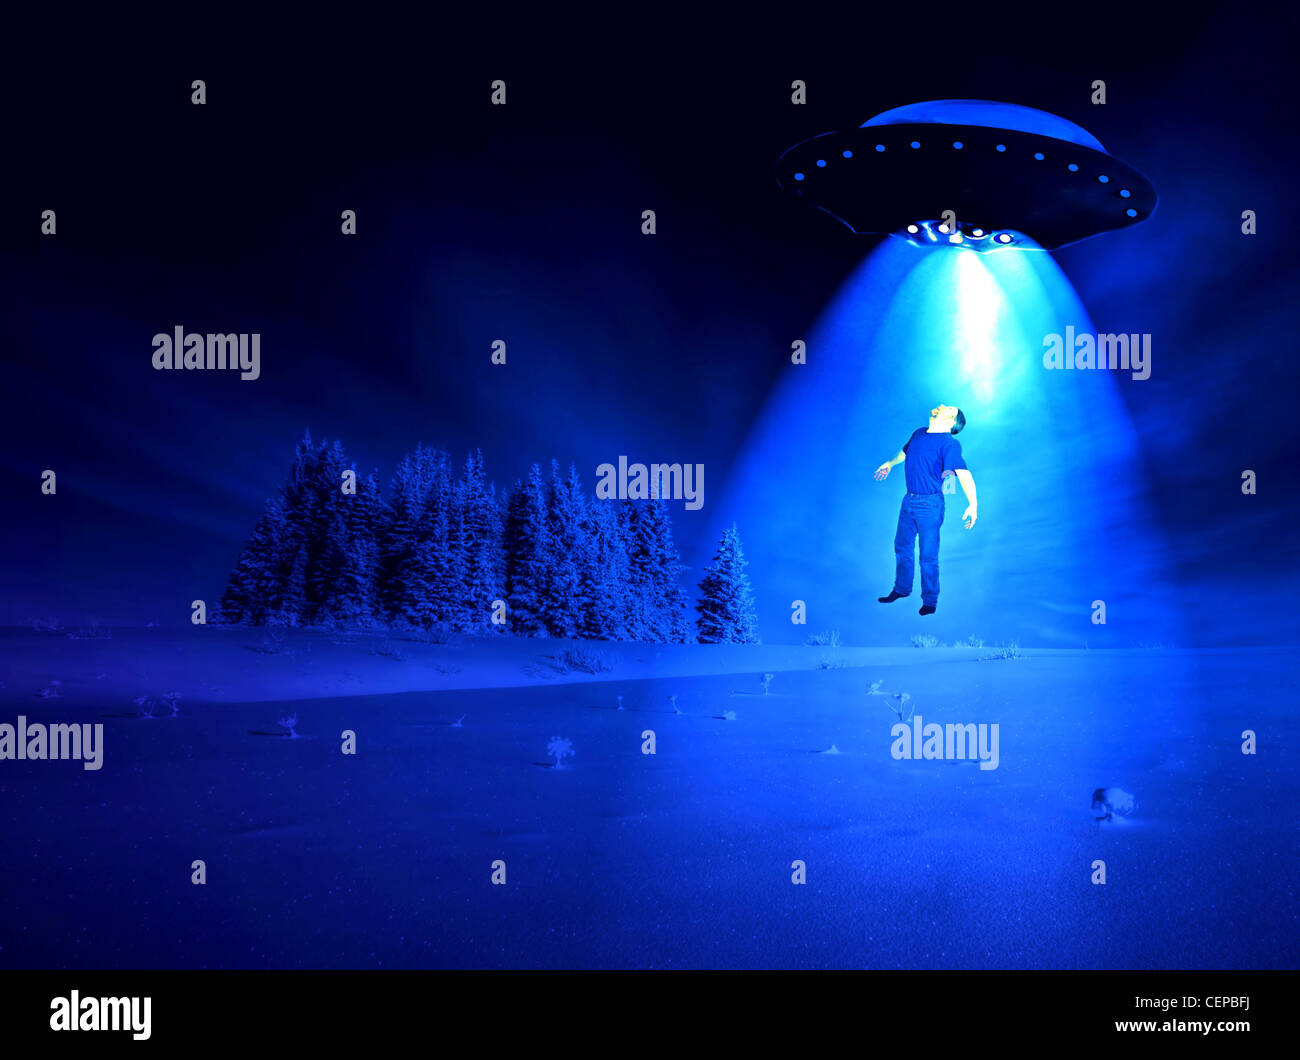 Man being abducted by aliens on a winter night. Stock Photo